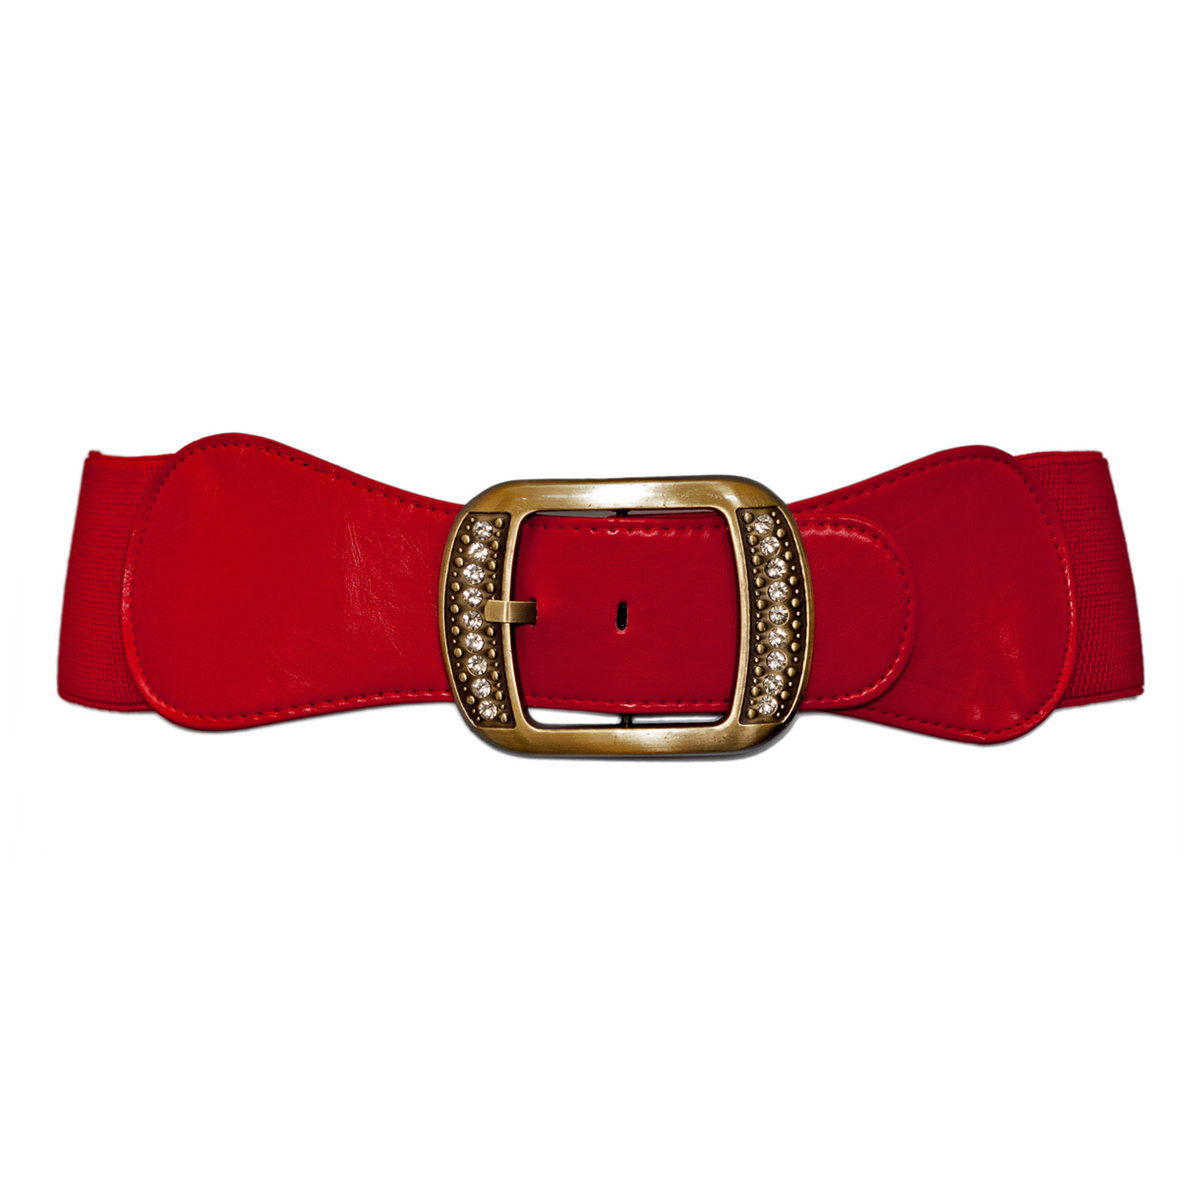 Plus Size Rhinestone Studded Burnished Buckle Elastic Belt Red Photo 1